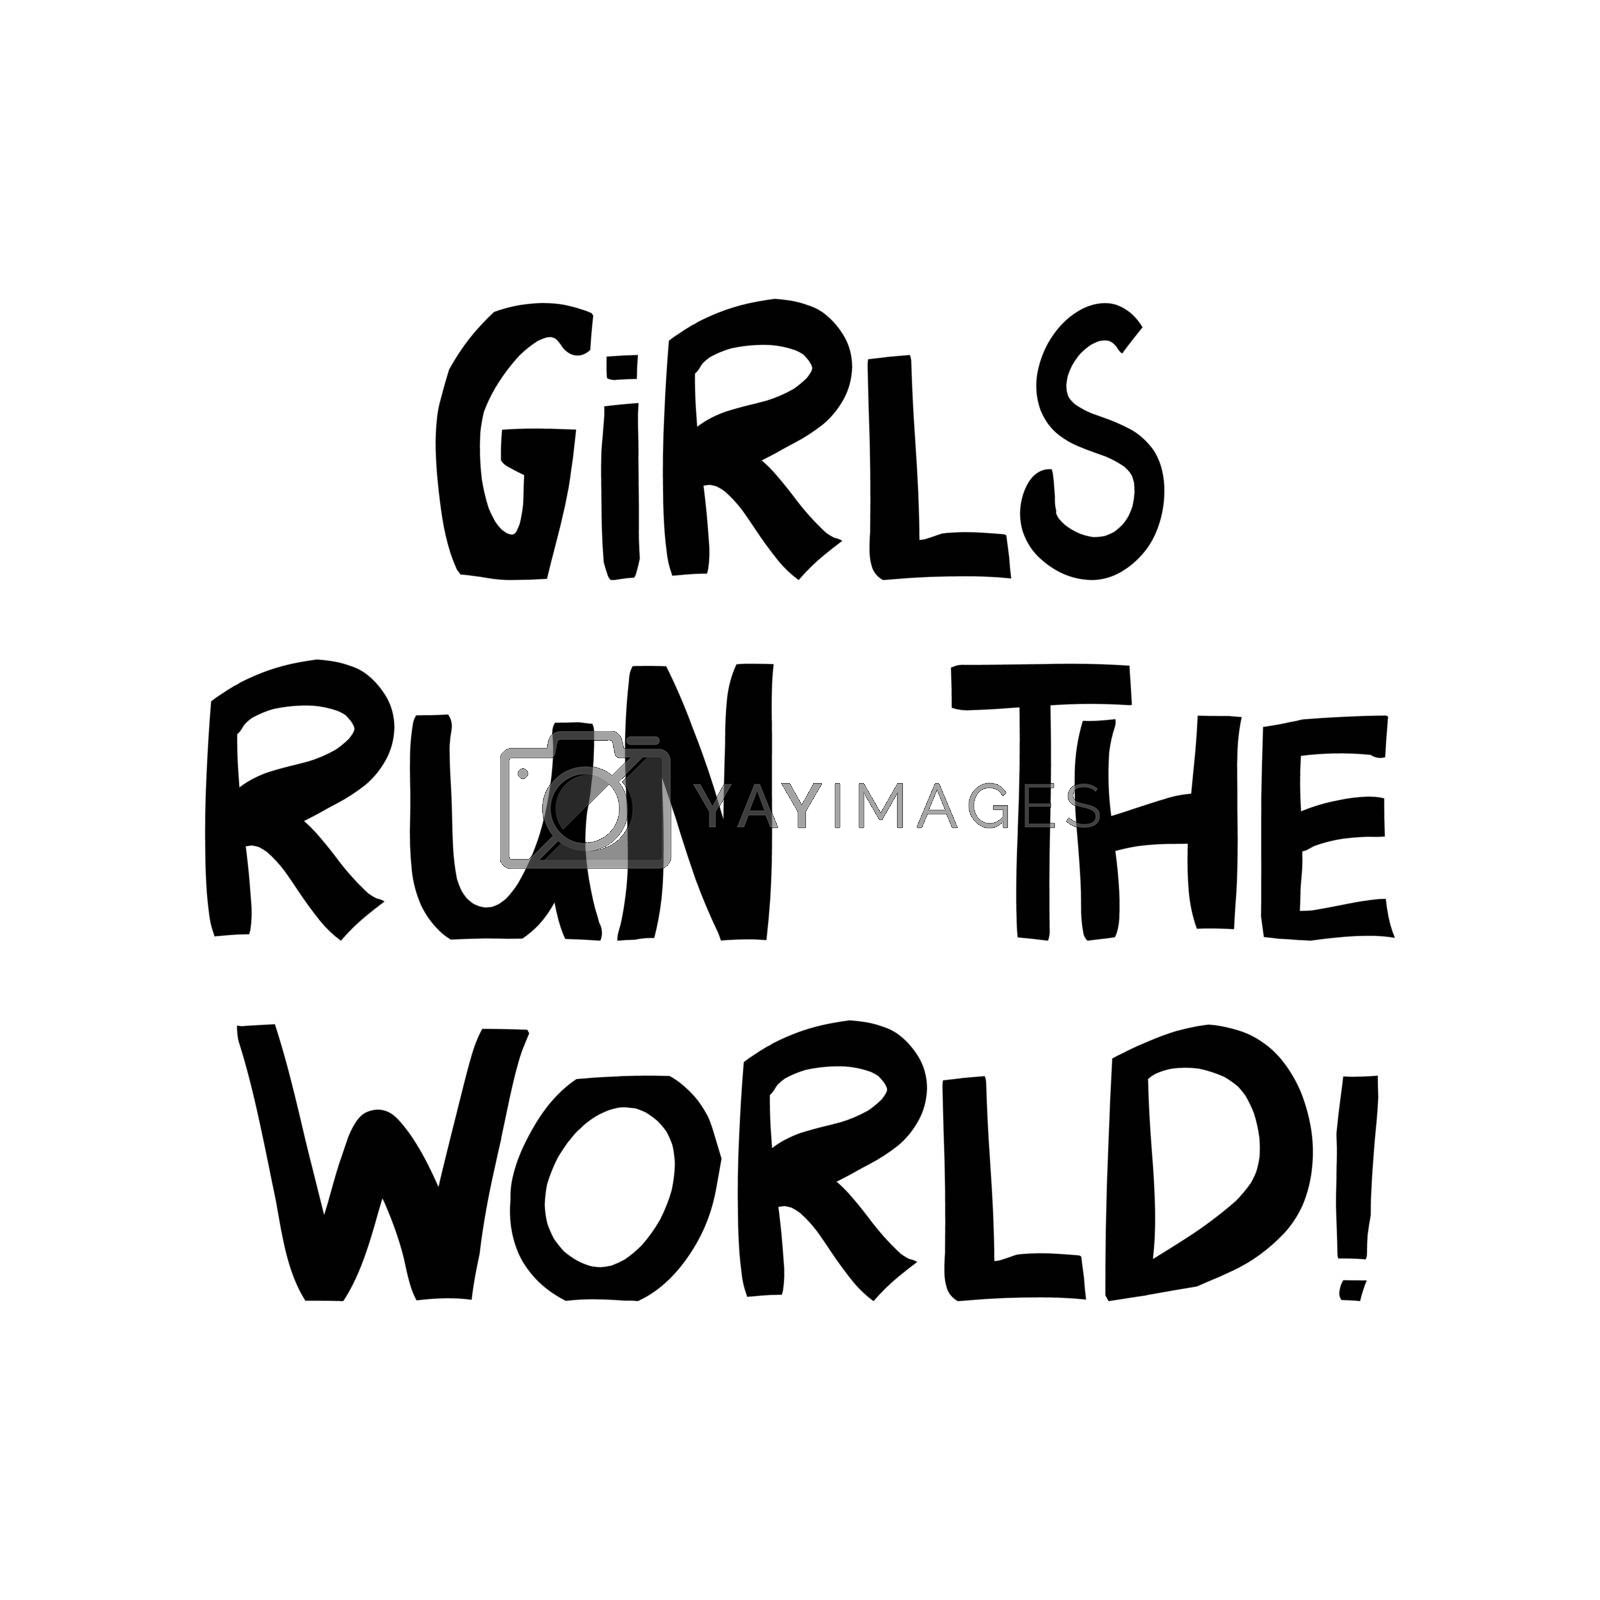 Girls run the world. Cute hand drawn lettering in modern scandinavian style. Isolated on white background. Vector stock illustration.